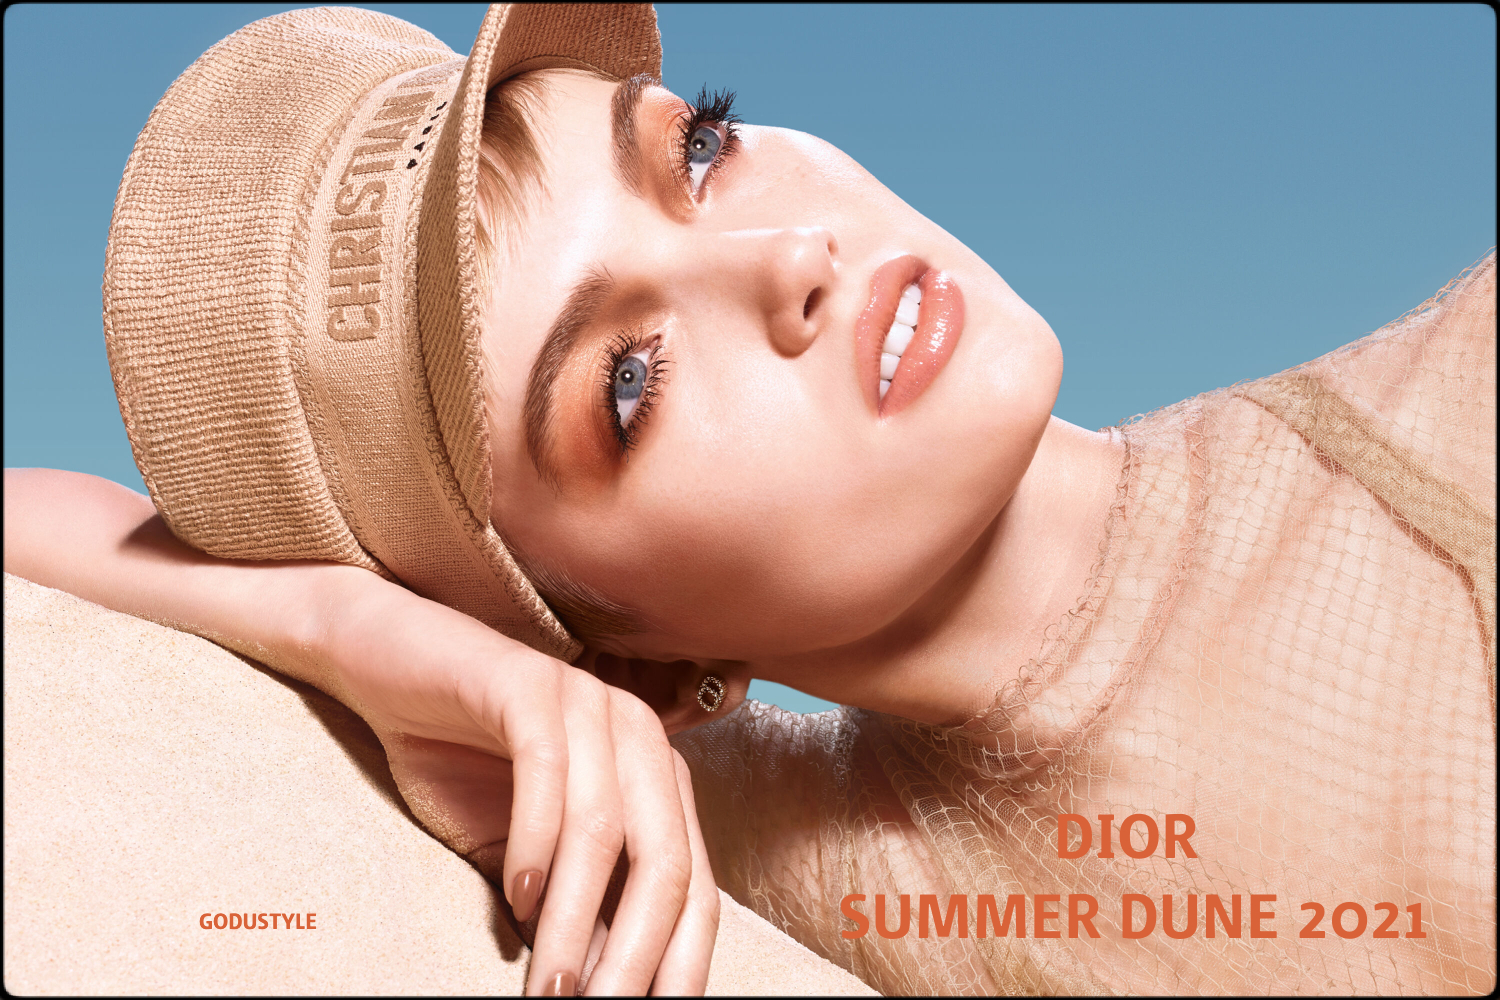 dior-summer-dune-2021-fashion-makeup-collection-beauty-look-style-details-shopping-maquillaje-belleza-moda-verano-godustyle